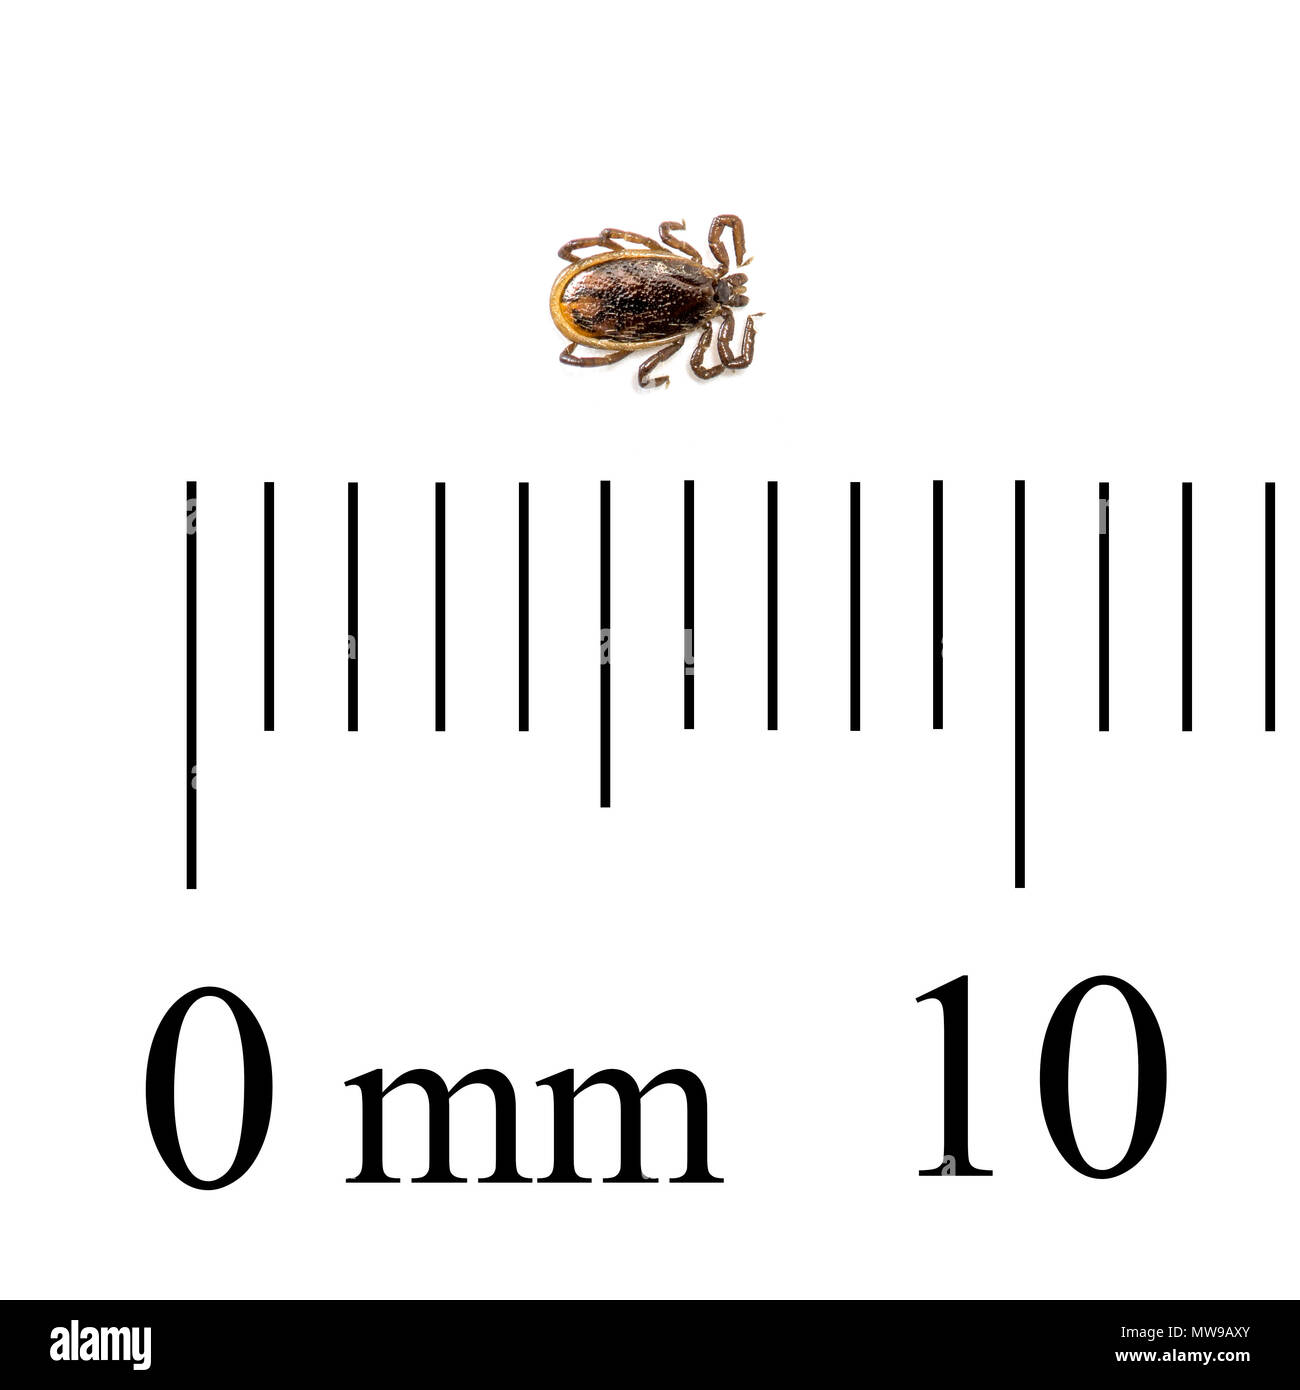 Macro photo with ruler for scale of adult male deer tick or black-legged tick (Ixodes scapularis). - Stock Image